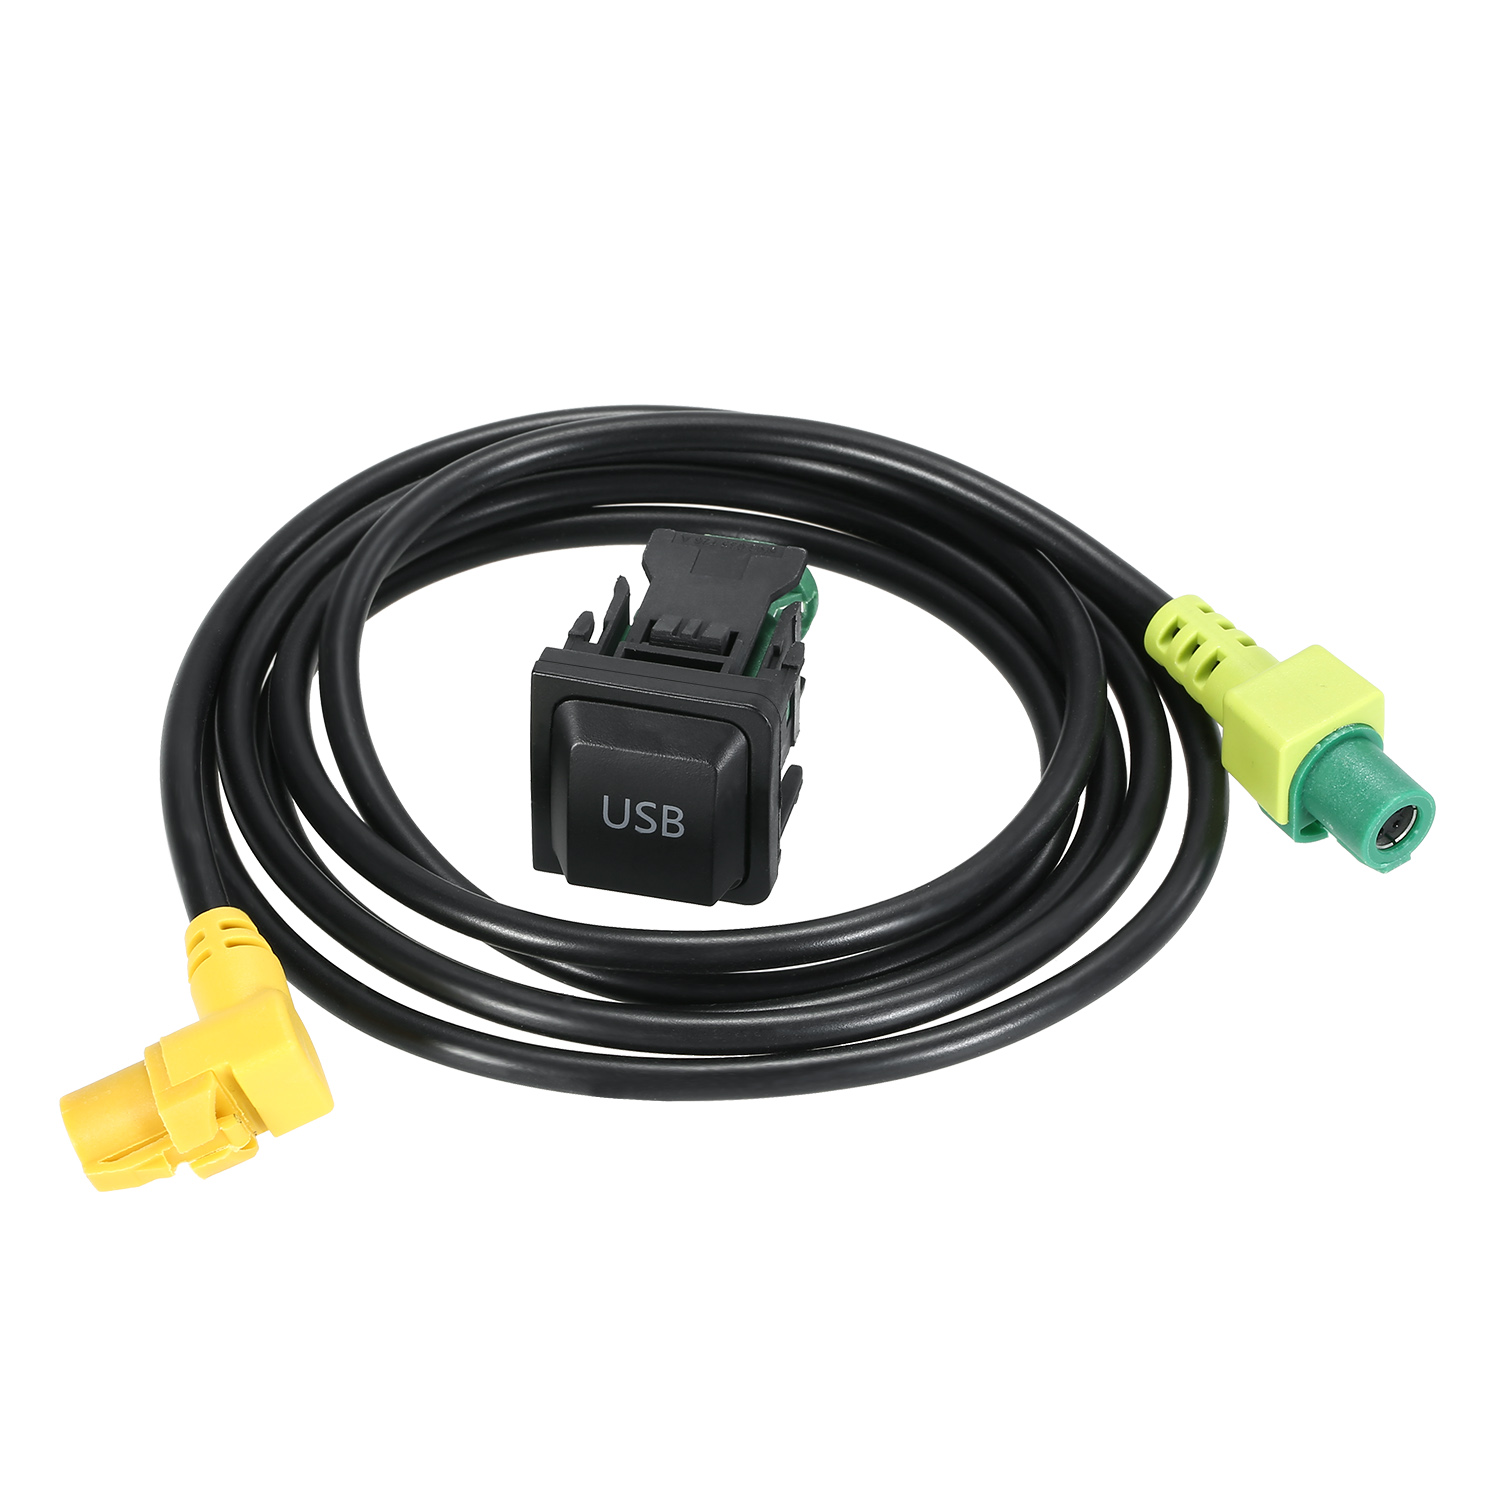 KKMOON 12V Car AUX <font><b>USB</b></font> Cable With Switch Replacement for <font><b>VW</b></font> <font><b>Golf</b></font> MK5 MK6 VI 5 6 Jetta CC Tiguan Passat B6 RCD510 RNS315 image